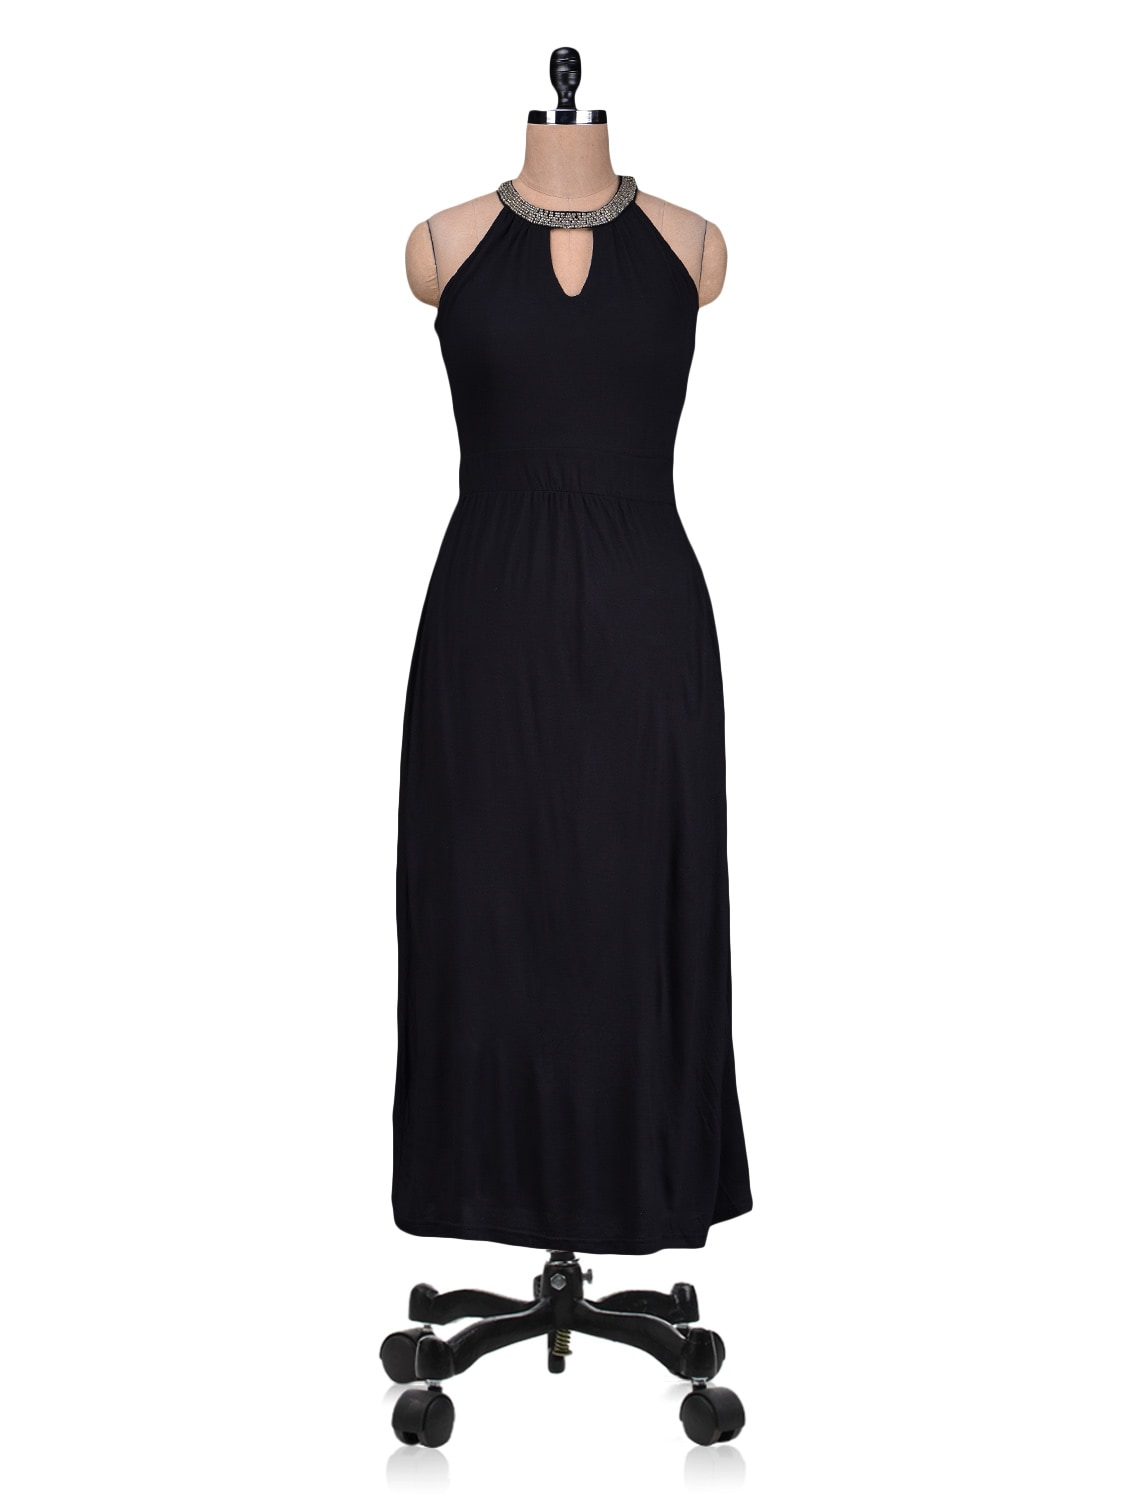 Black Beaded Knitted Viscose Maxi Dress - By